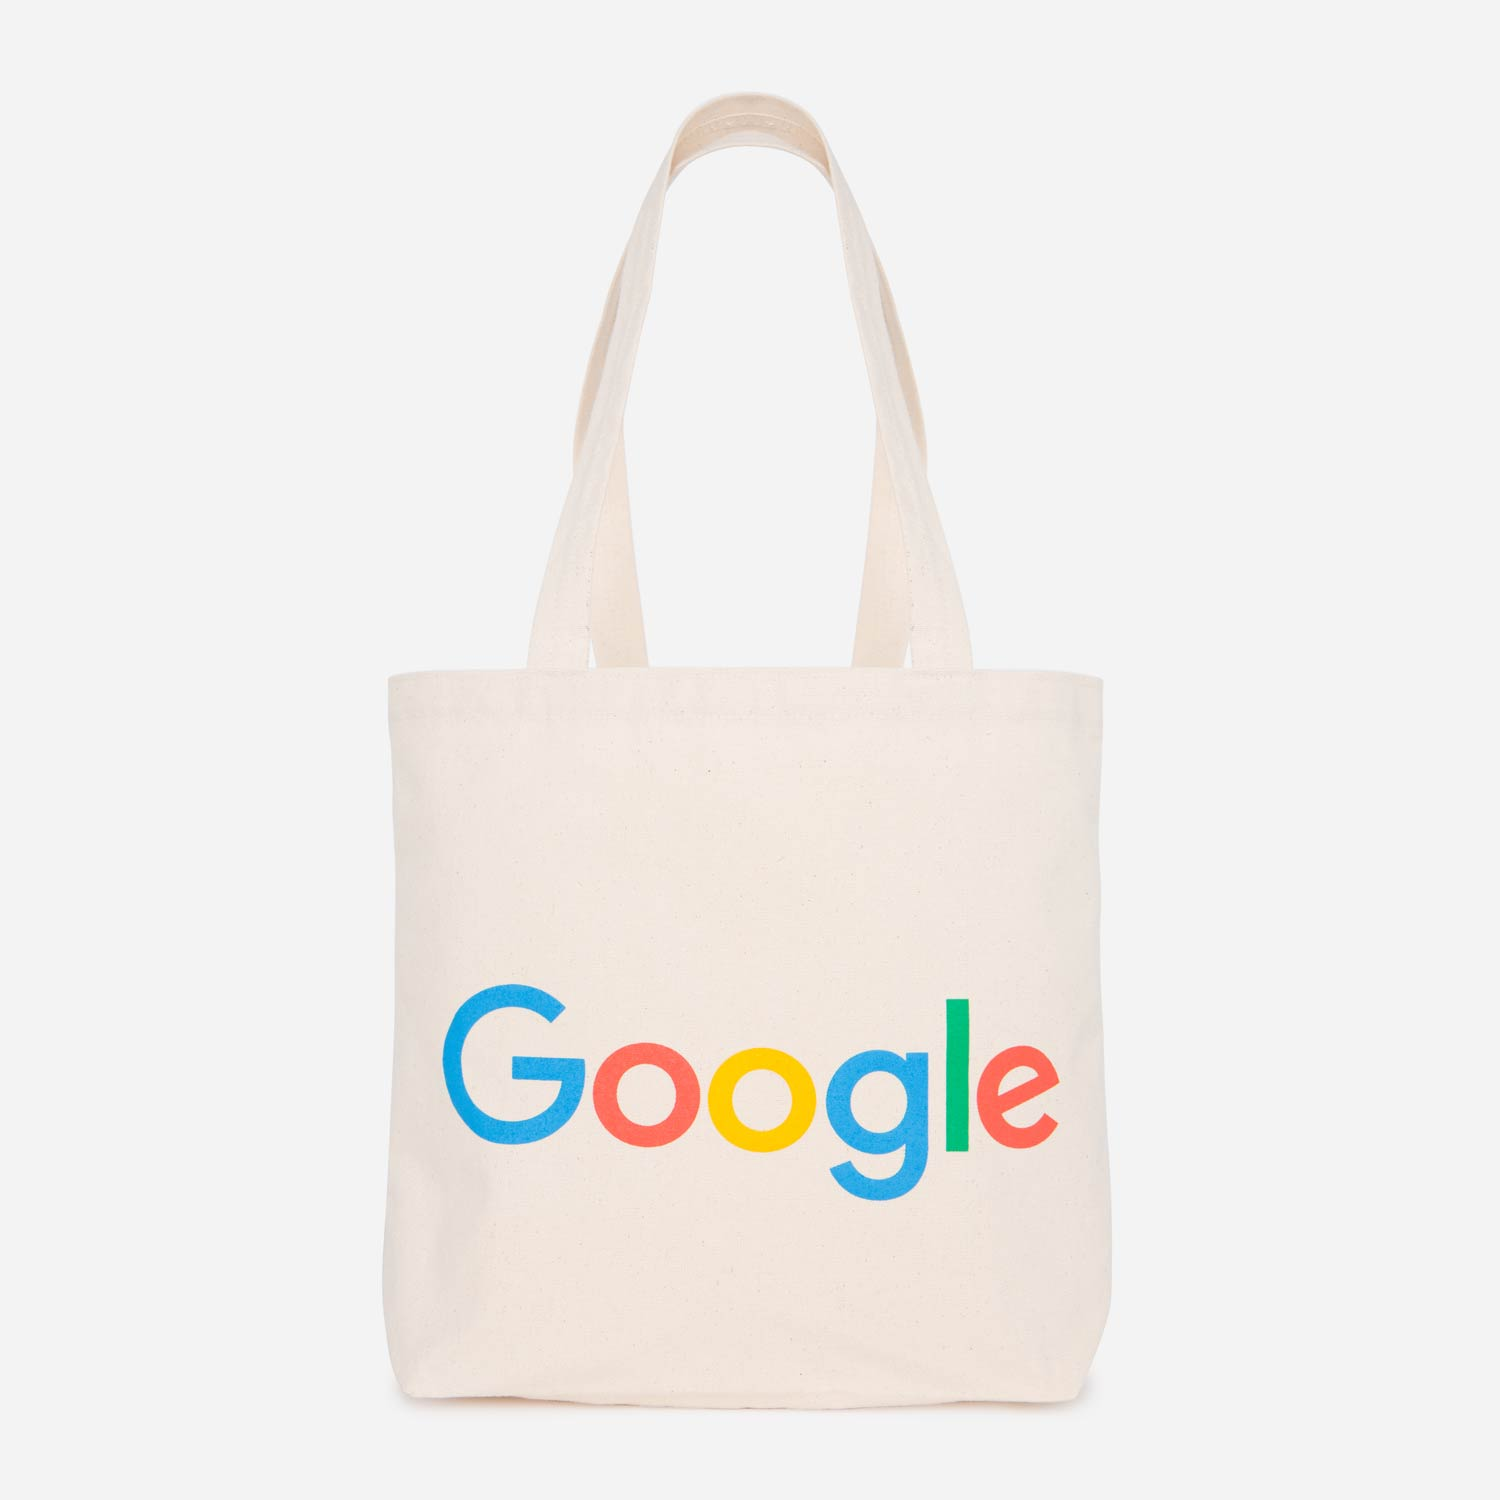 332c85387caa Tap to expand. This Google Large Tote ...